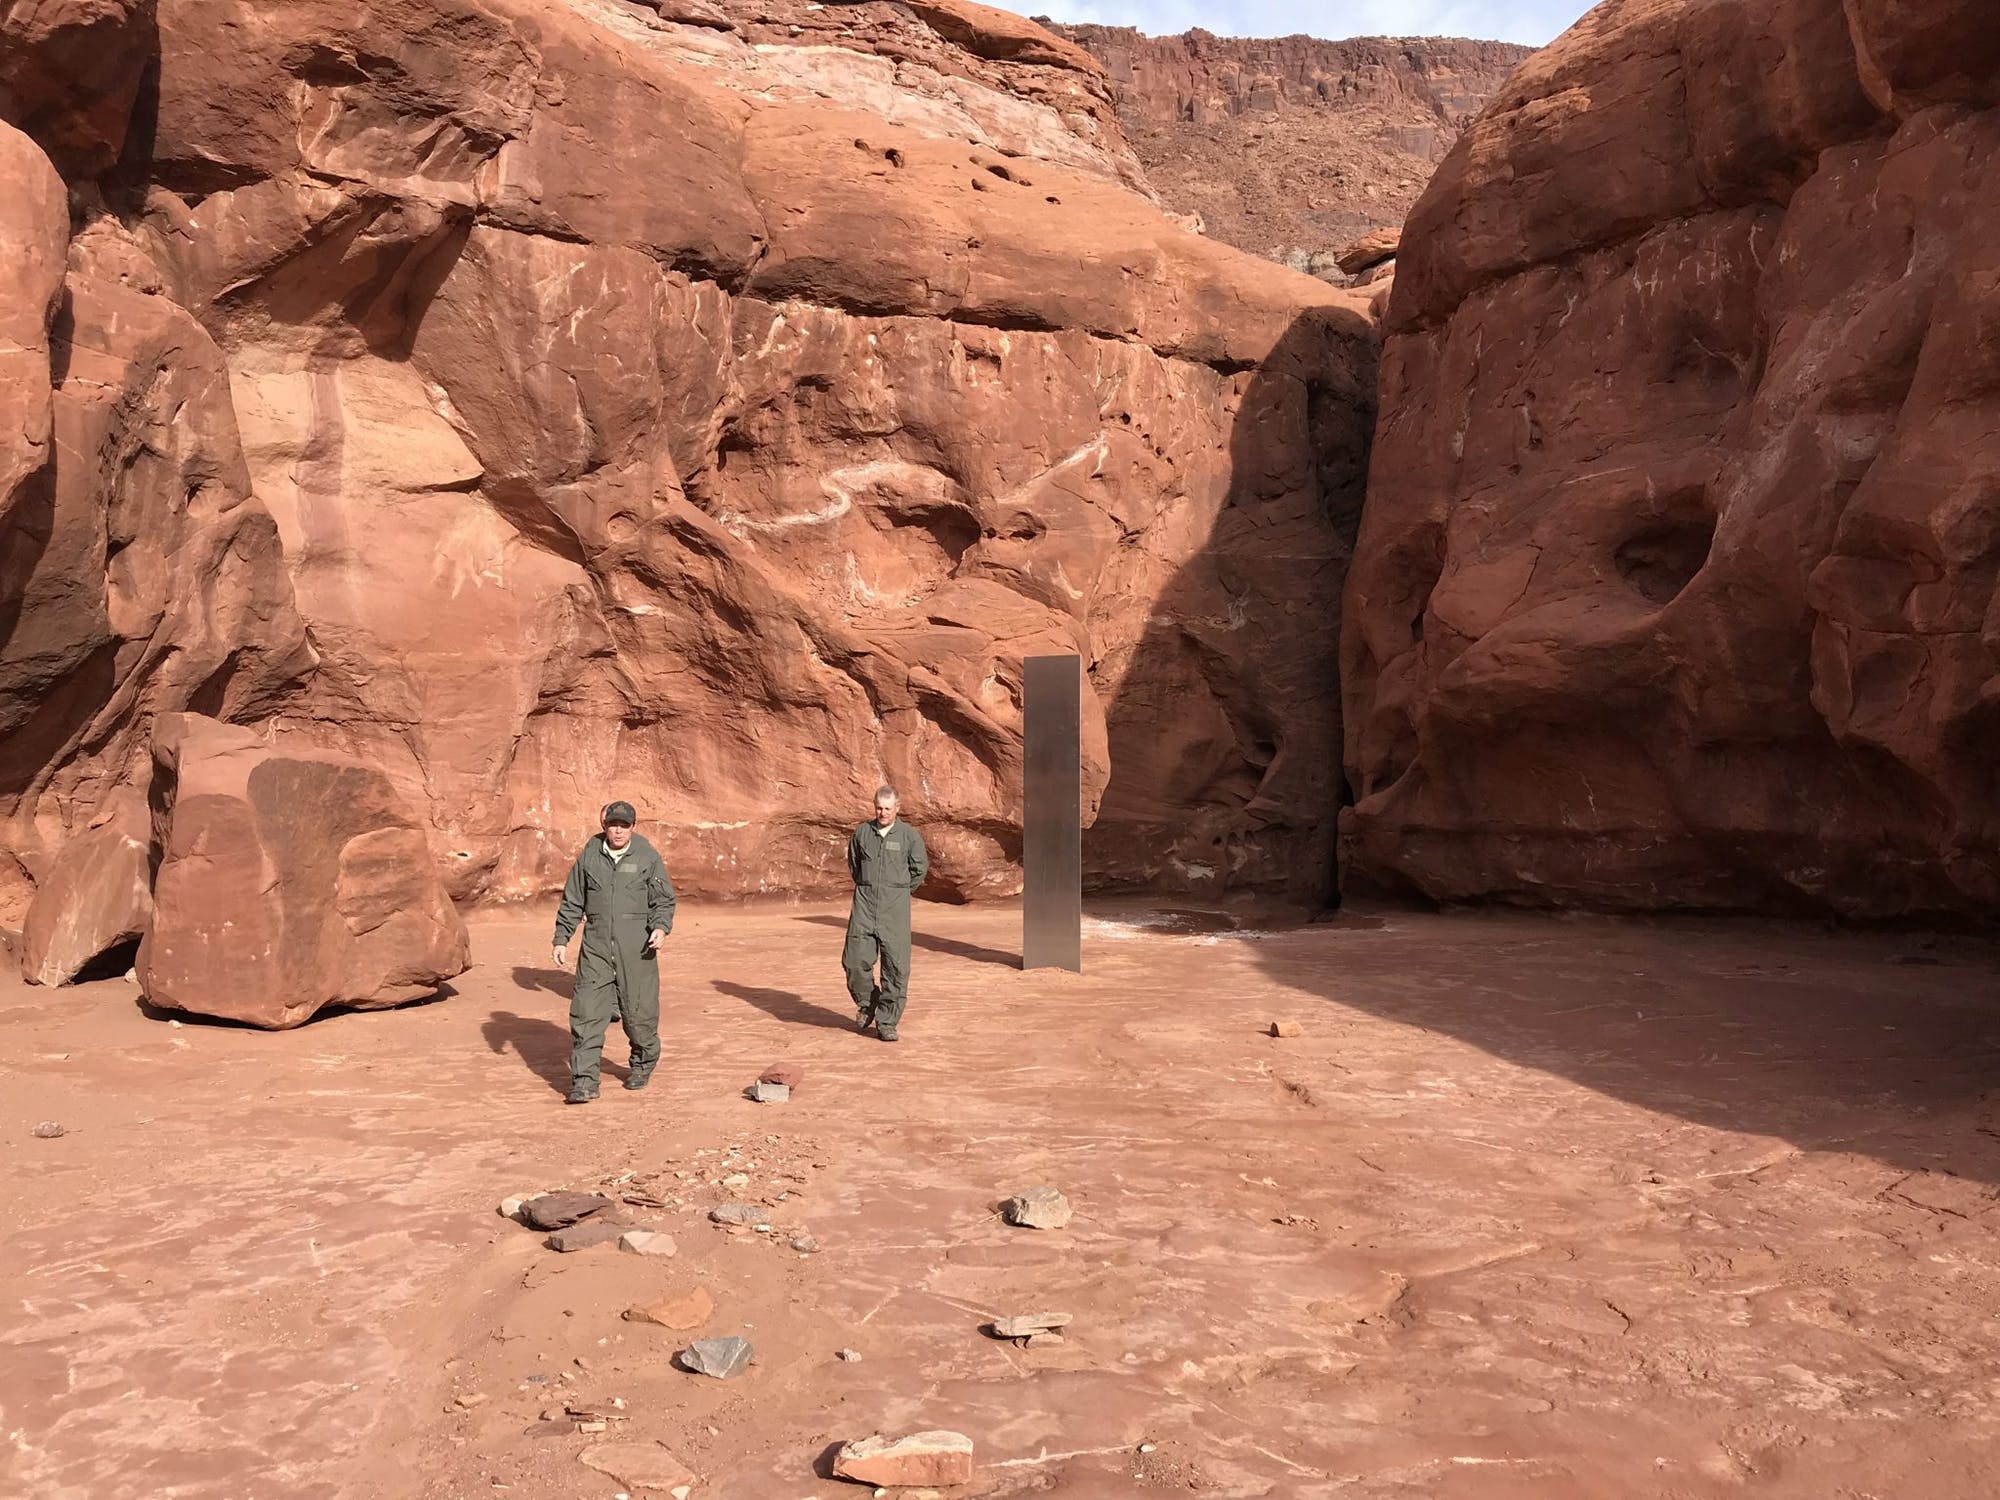 UTAH HELICOPTER CREW DISCOVERS MYSTERIOUS METAL MONOLITH DEEP IN THE DESERT